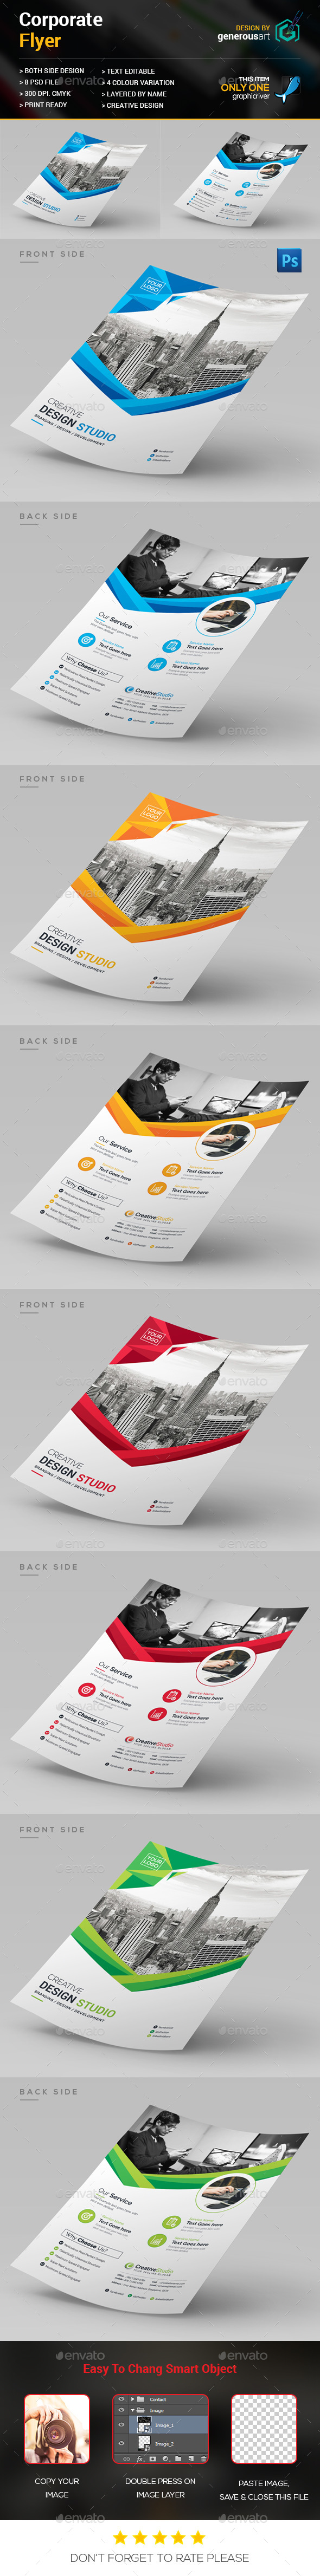 New Design Flyer - Corporate Flyers